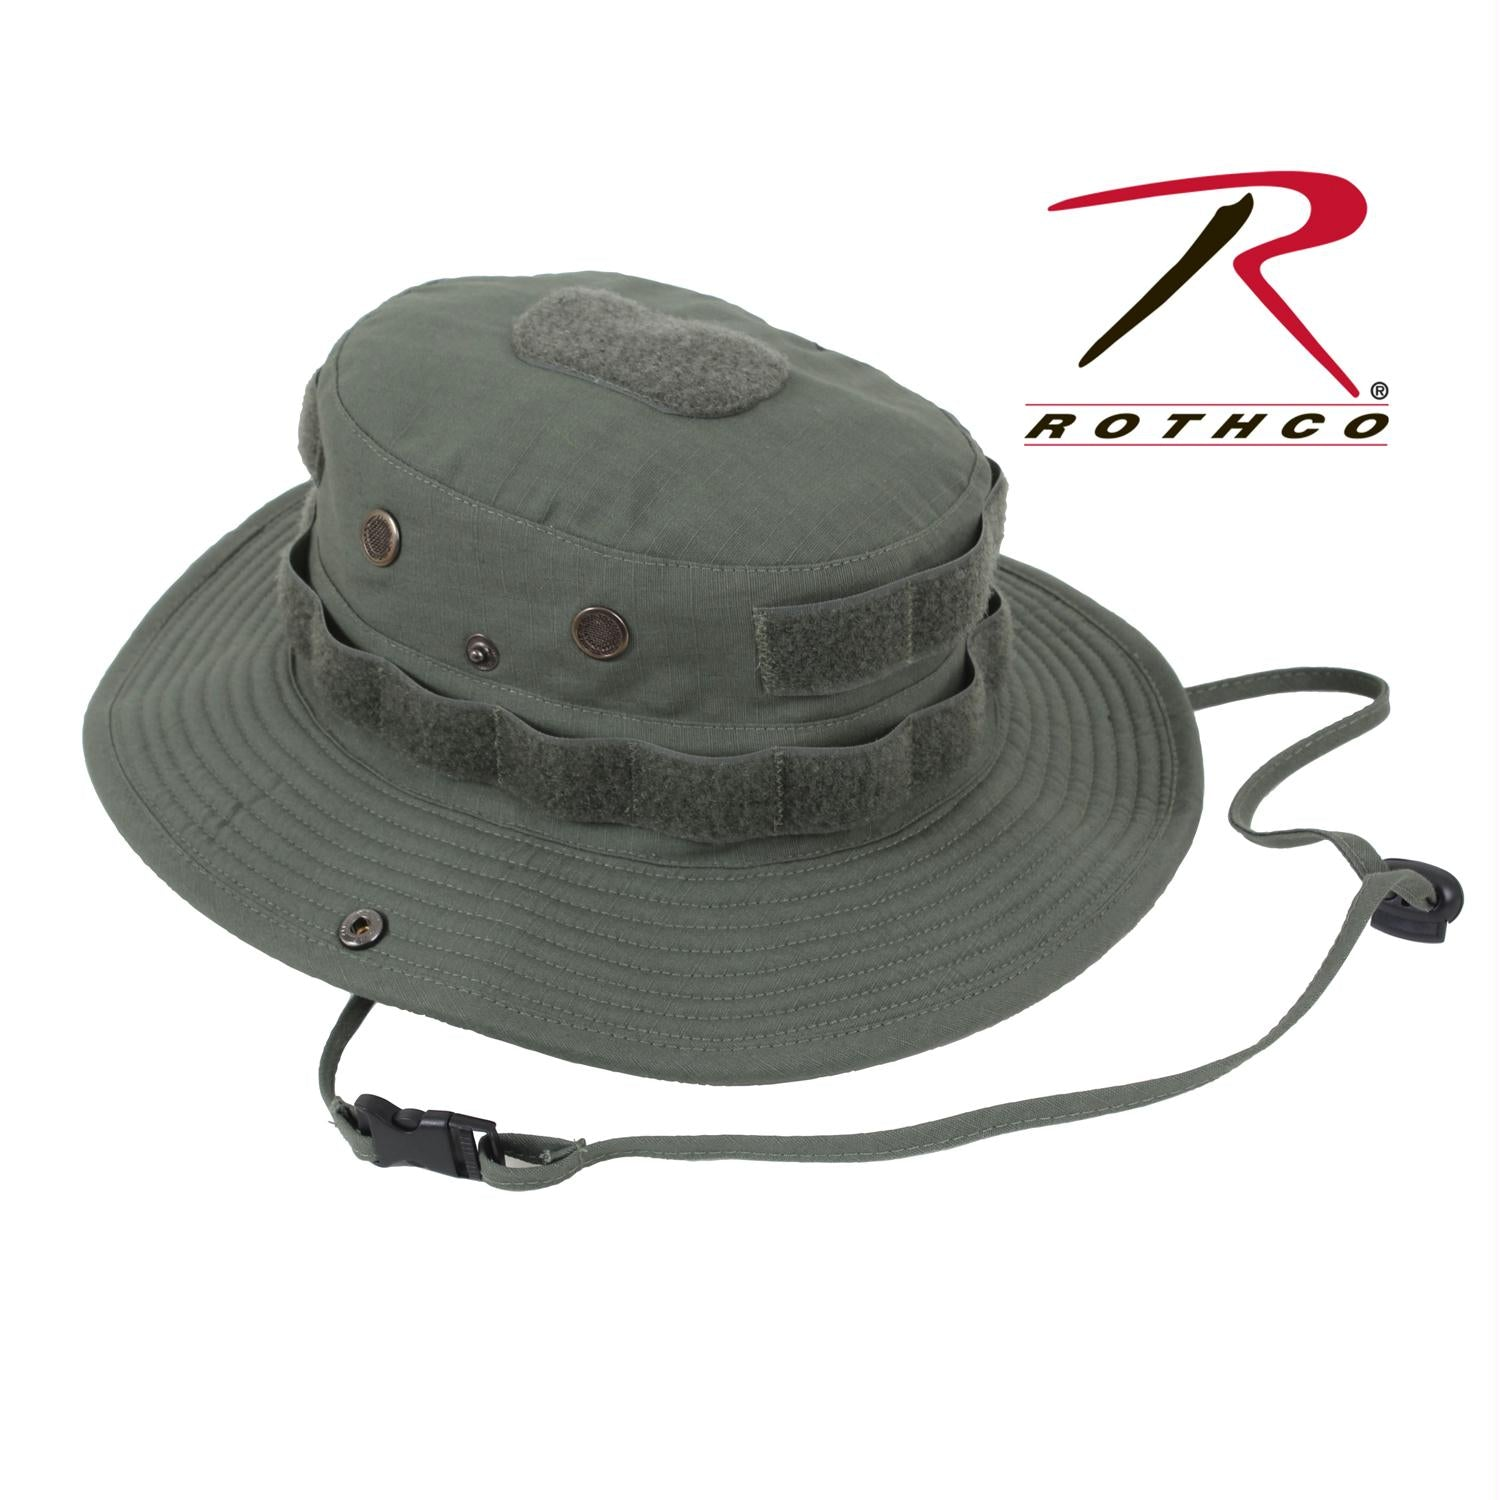 Rothco Tactical Boonie Hat - Olive Drab / 7 3/4